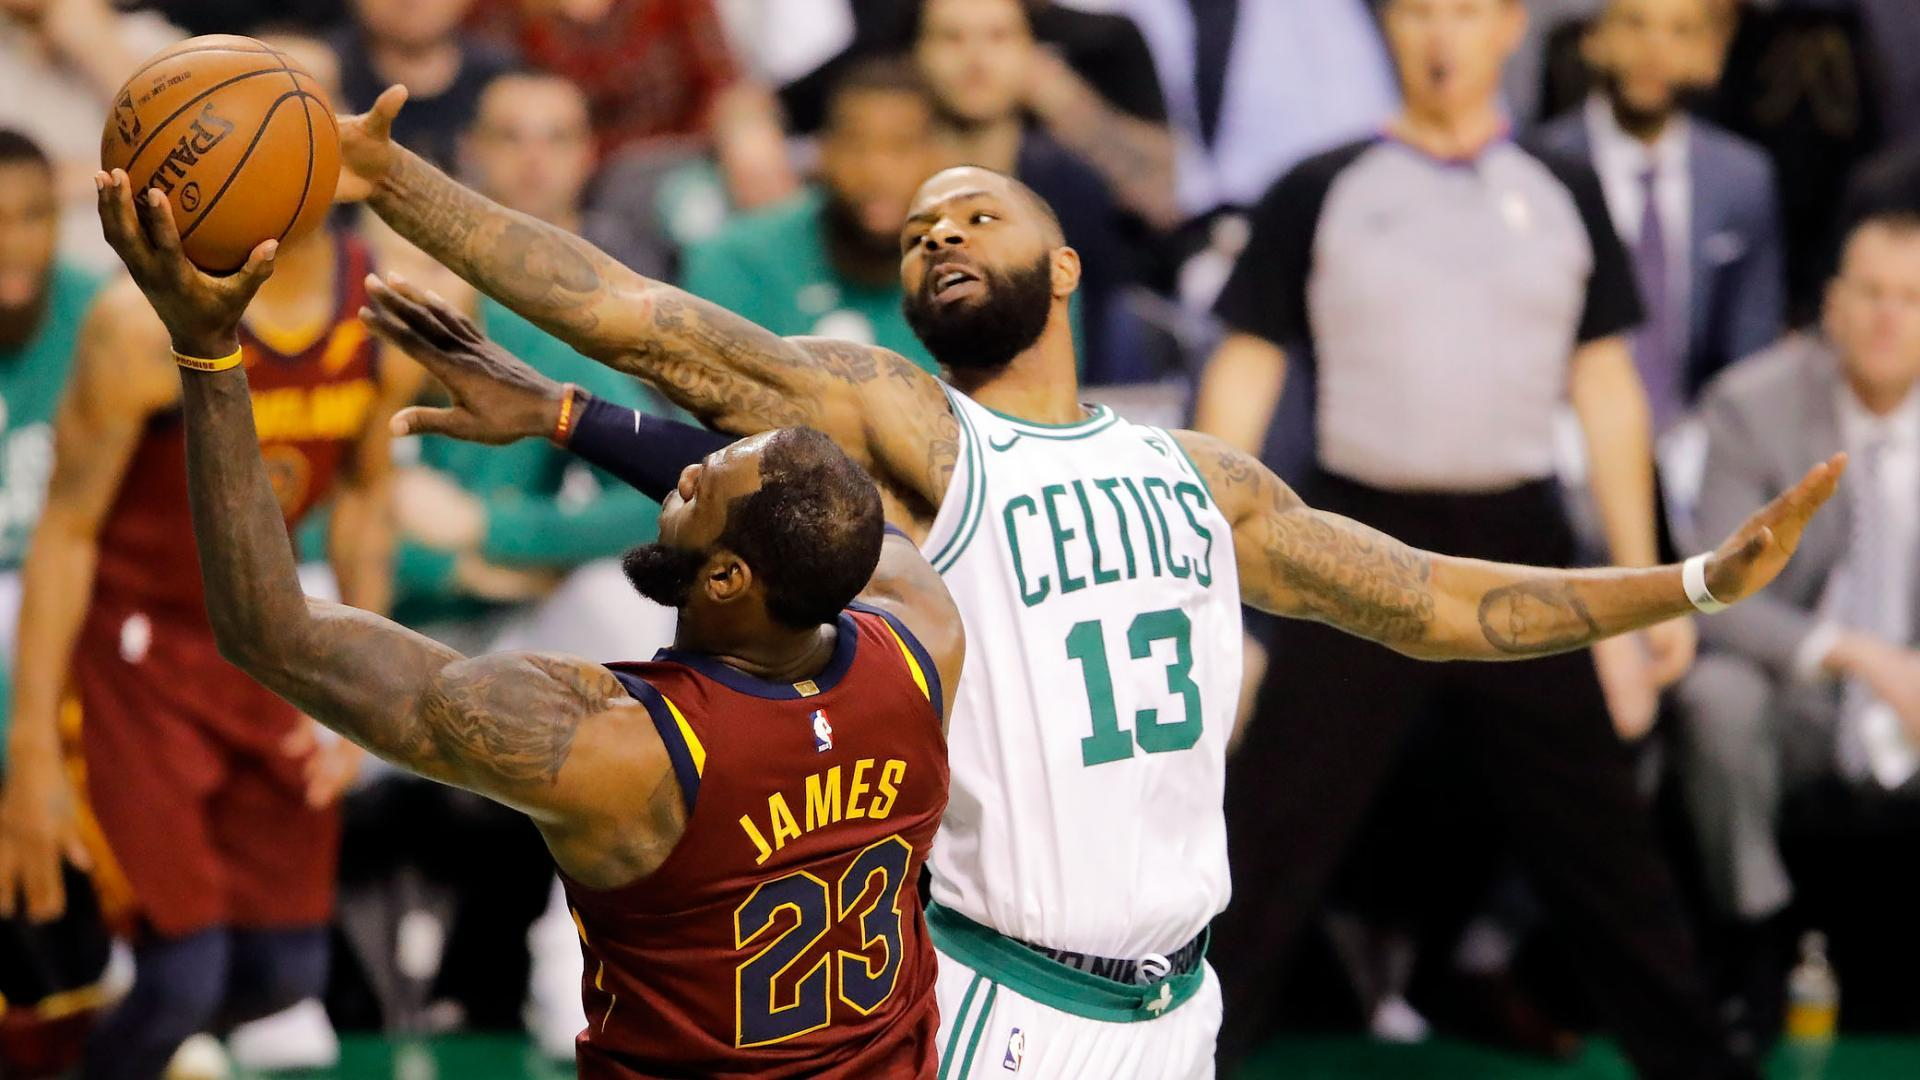 Boston Celtics: Marcus Morris shows up when it matters most